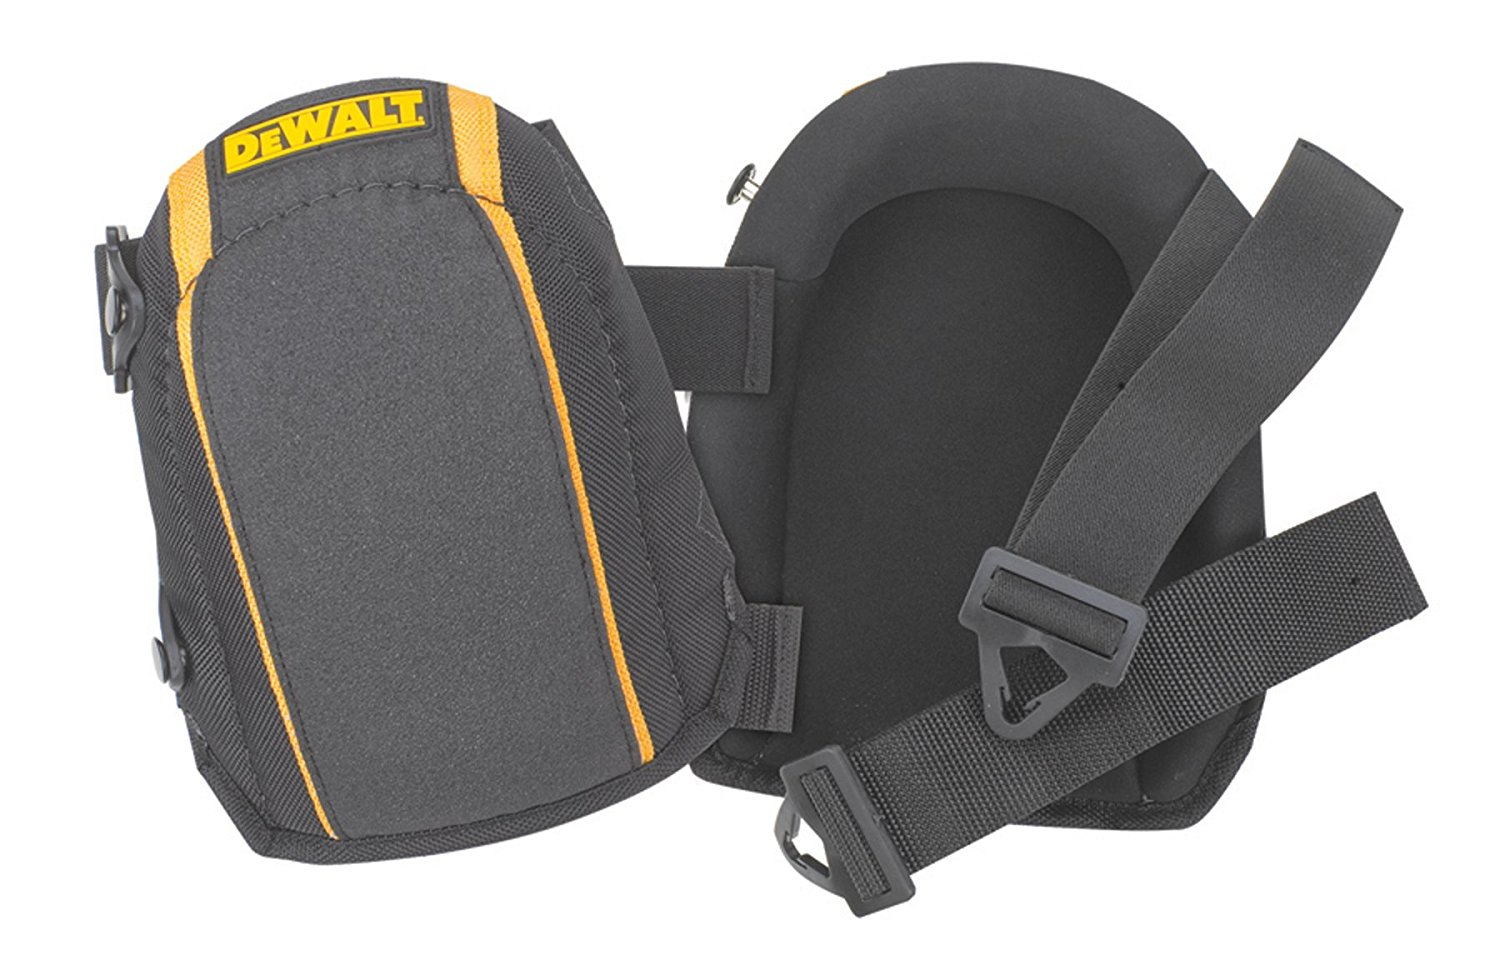 DEWALT DG5224 Heavy-duty Flooring Knee Pads